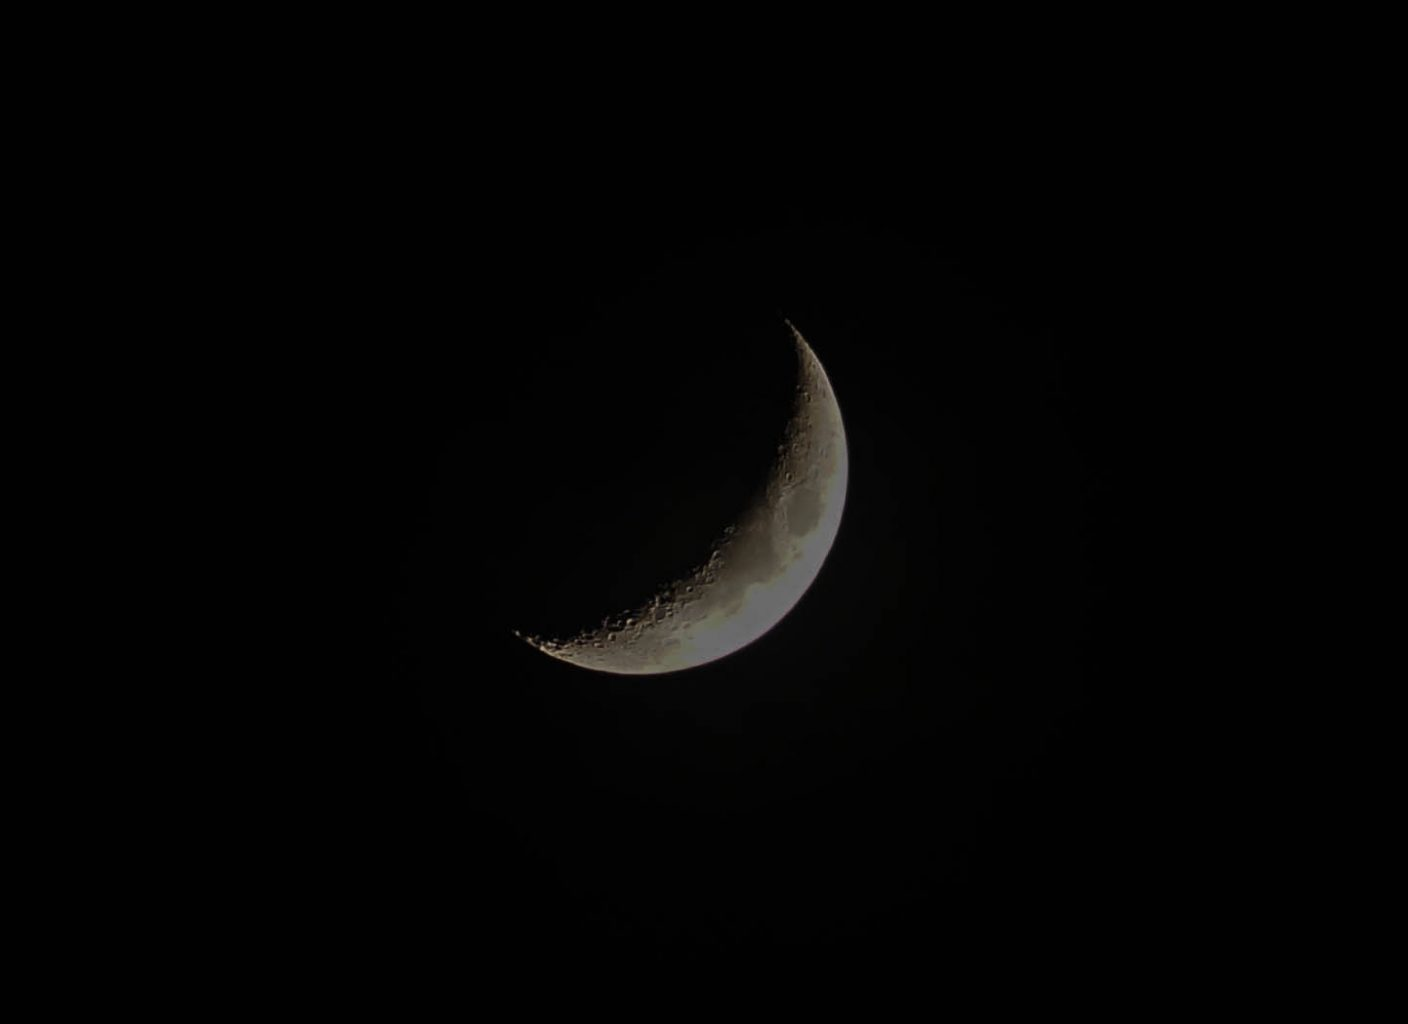 Sliver of Moon in the night sky by Skitter Photo from stocksnap.io